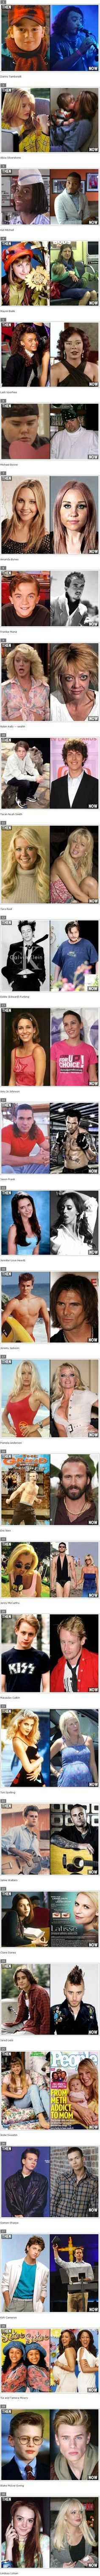 Celebrities: Then and Now!